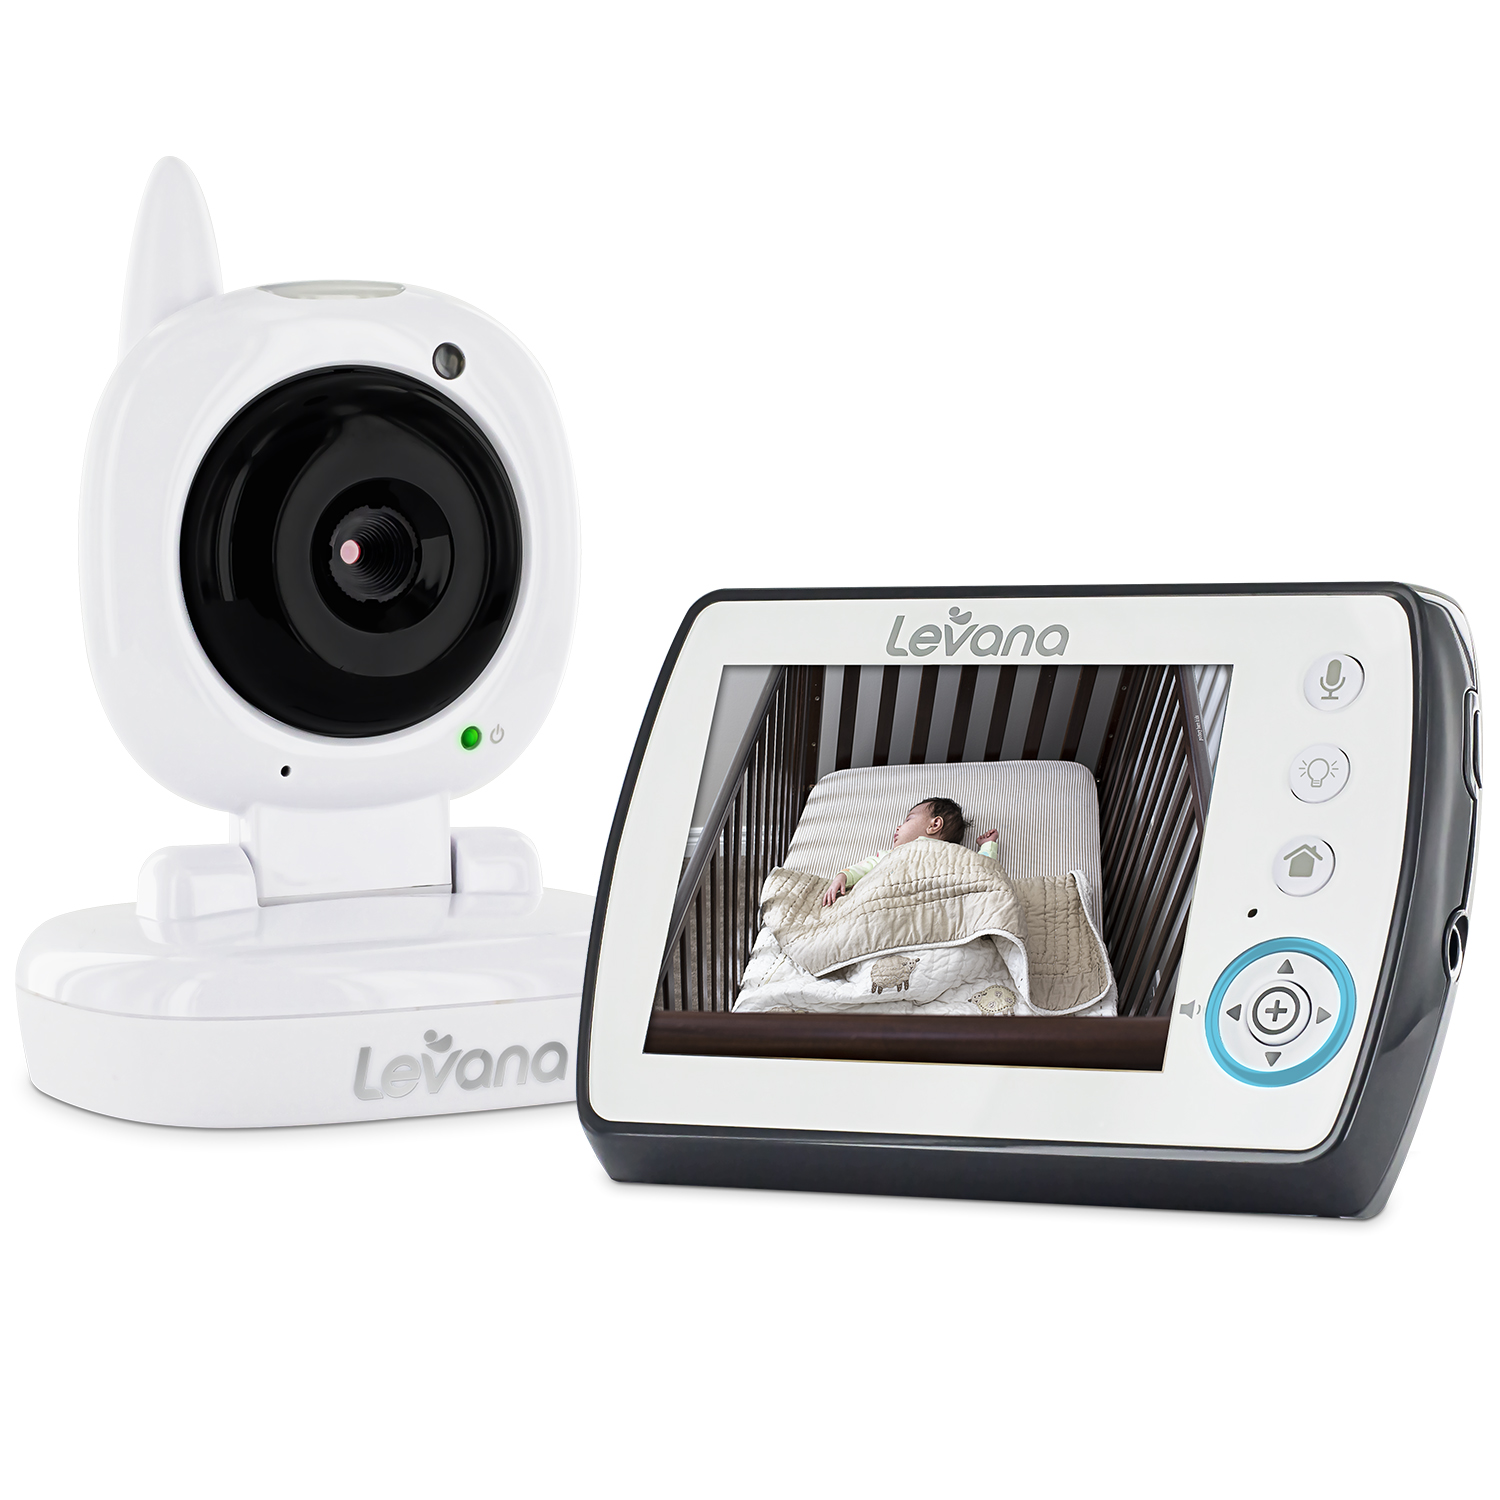 "Levana Ayden 3.5"" Digital Video Baby Monitor with Night Vision Camera, Temperature Monitoring, Talk to Baby"